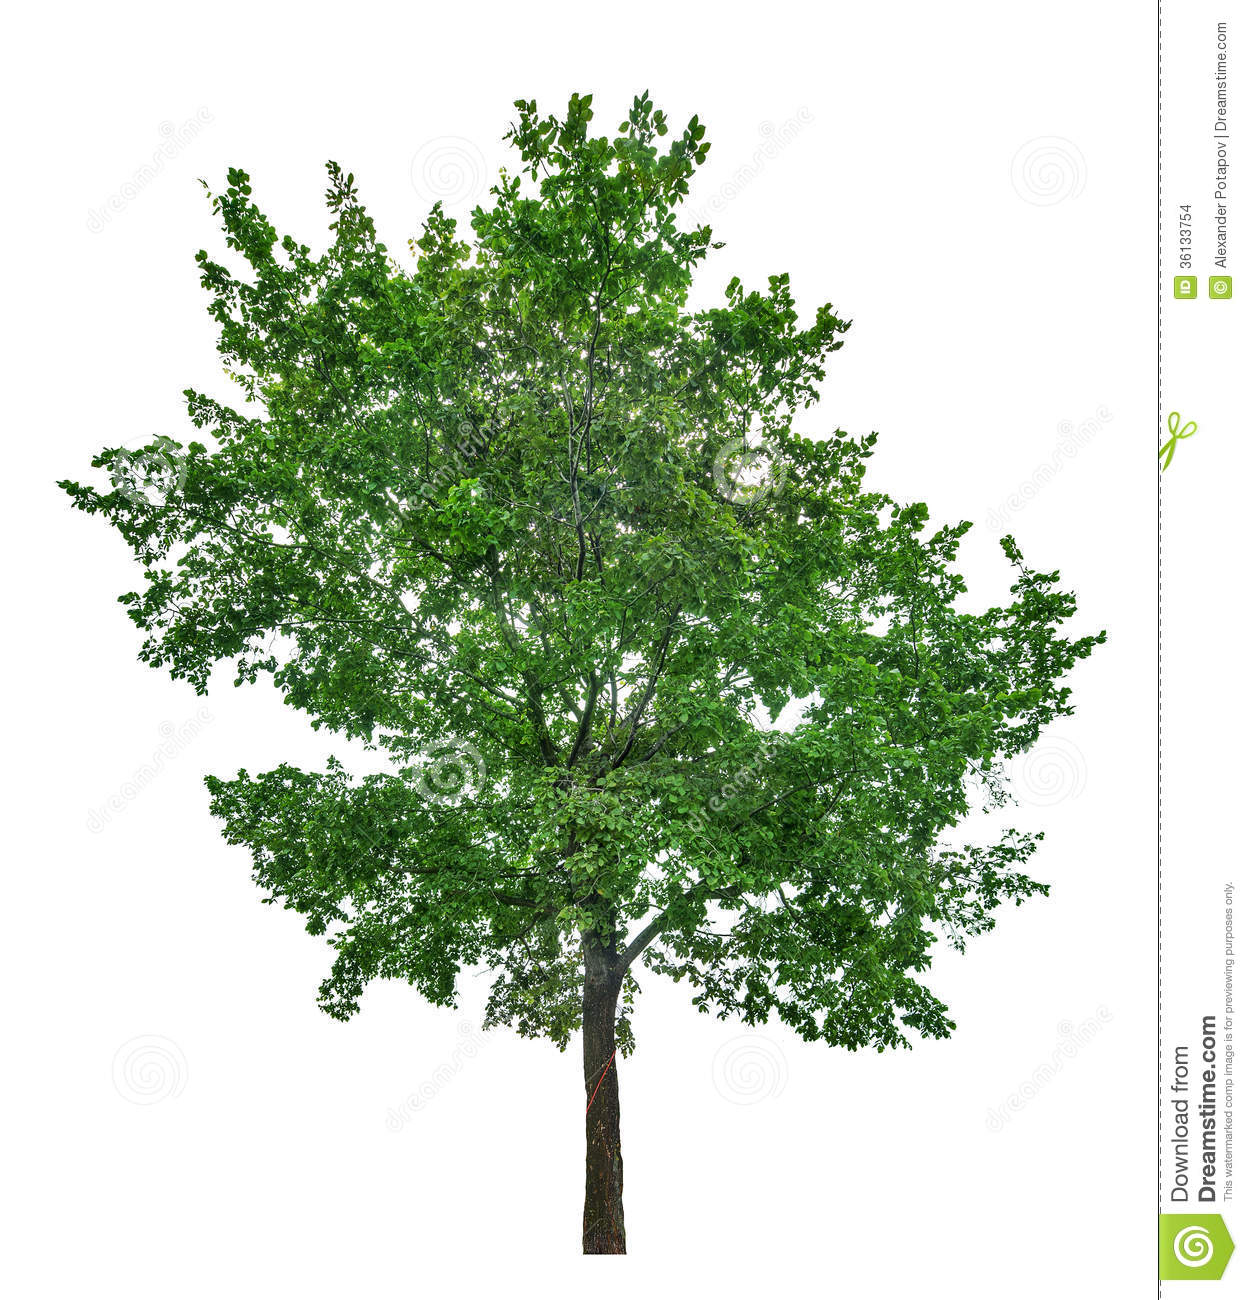 Lime Tree Png - Dark Green Large Lime Tree Isolated On White Stock Photo 36133754 ...